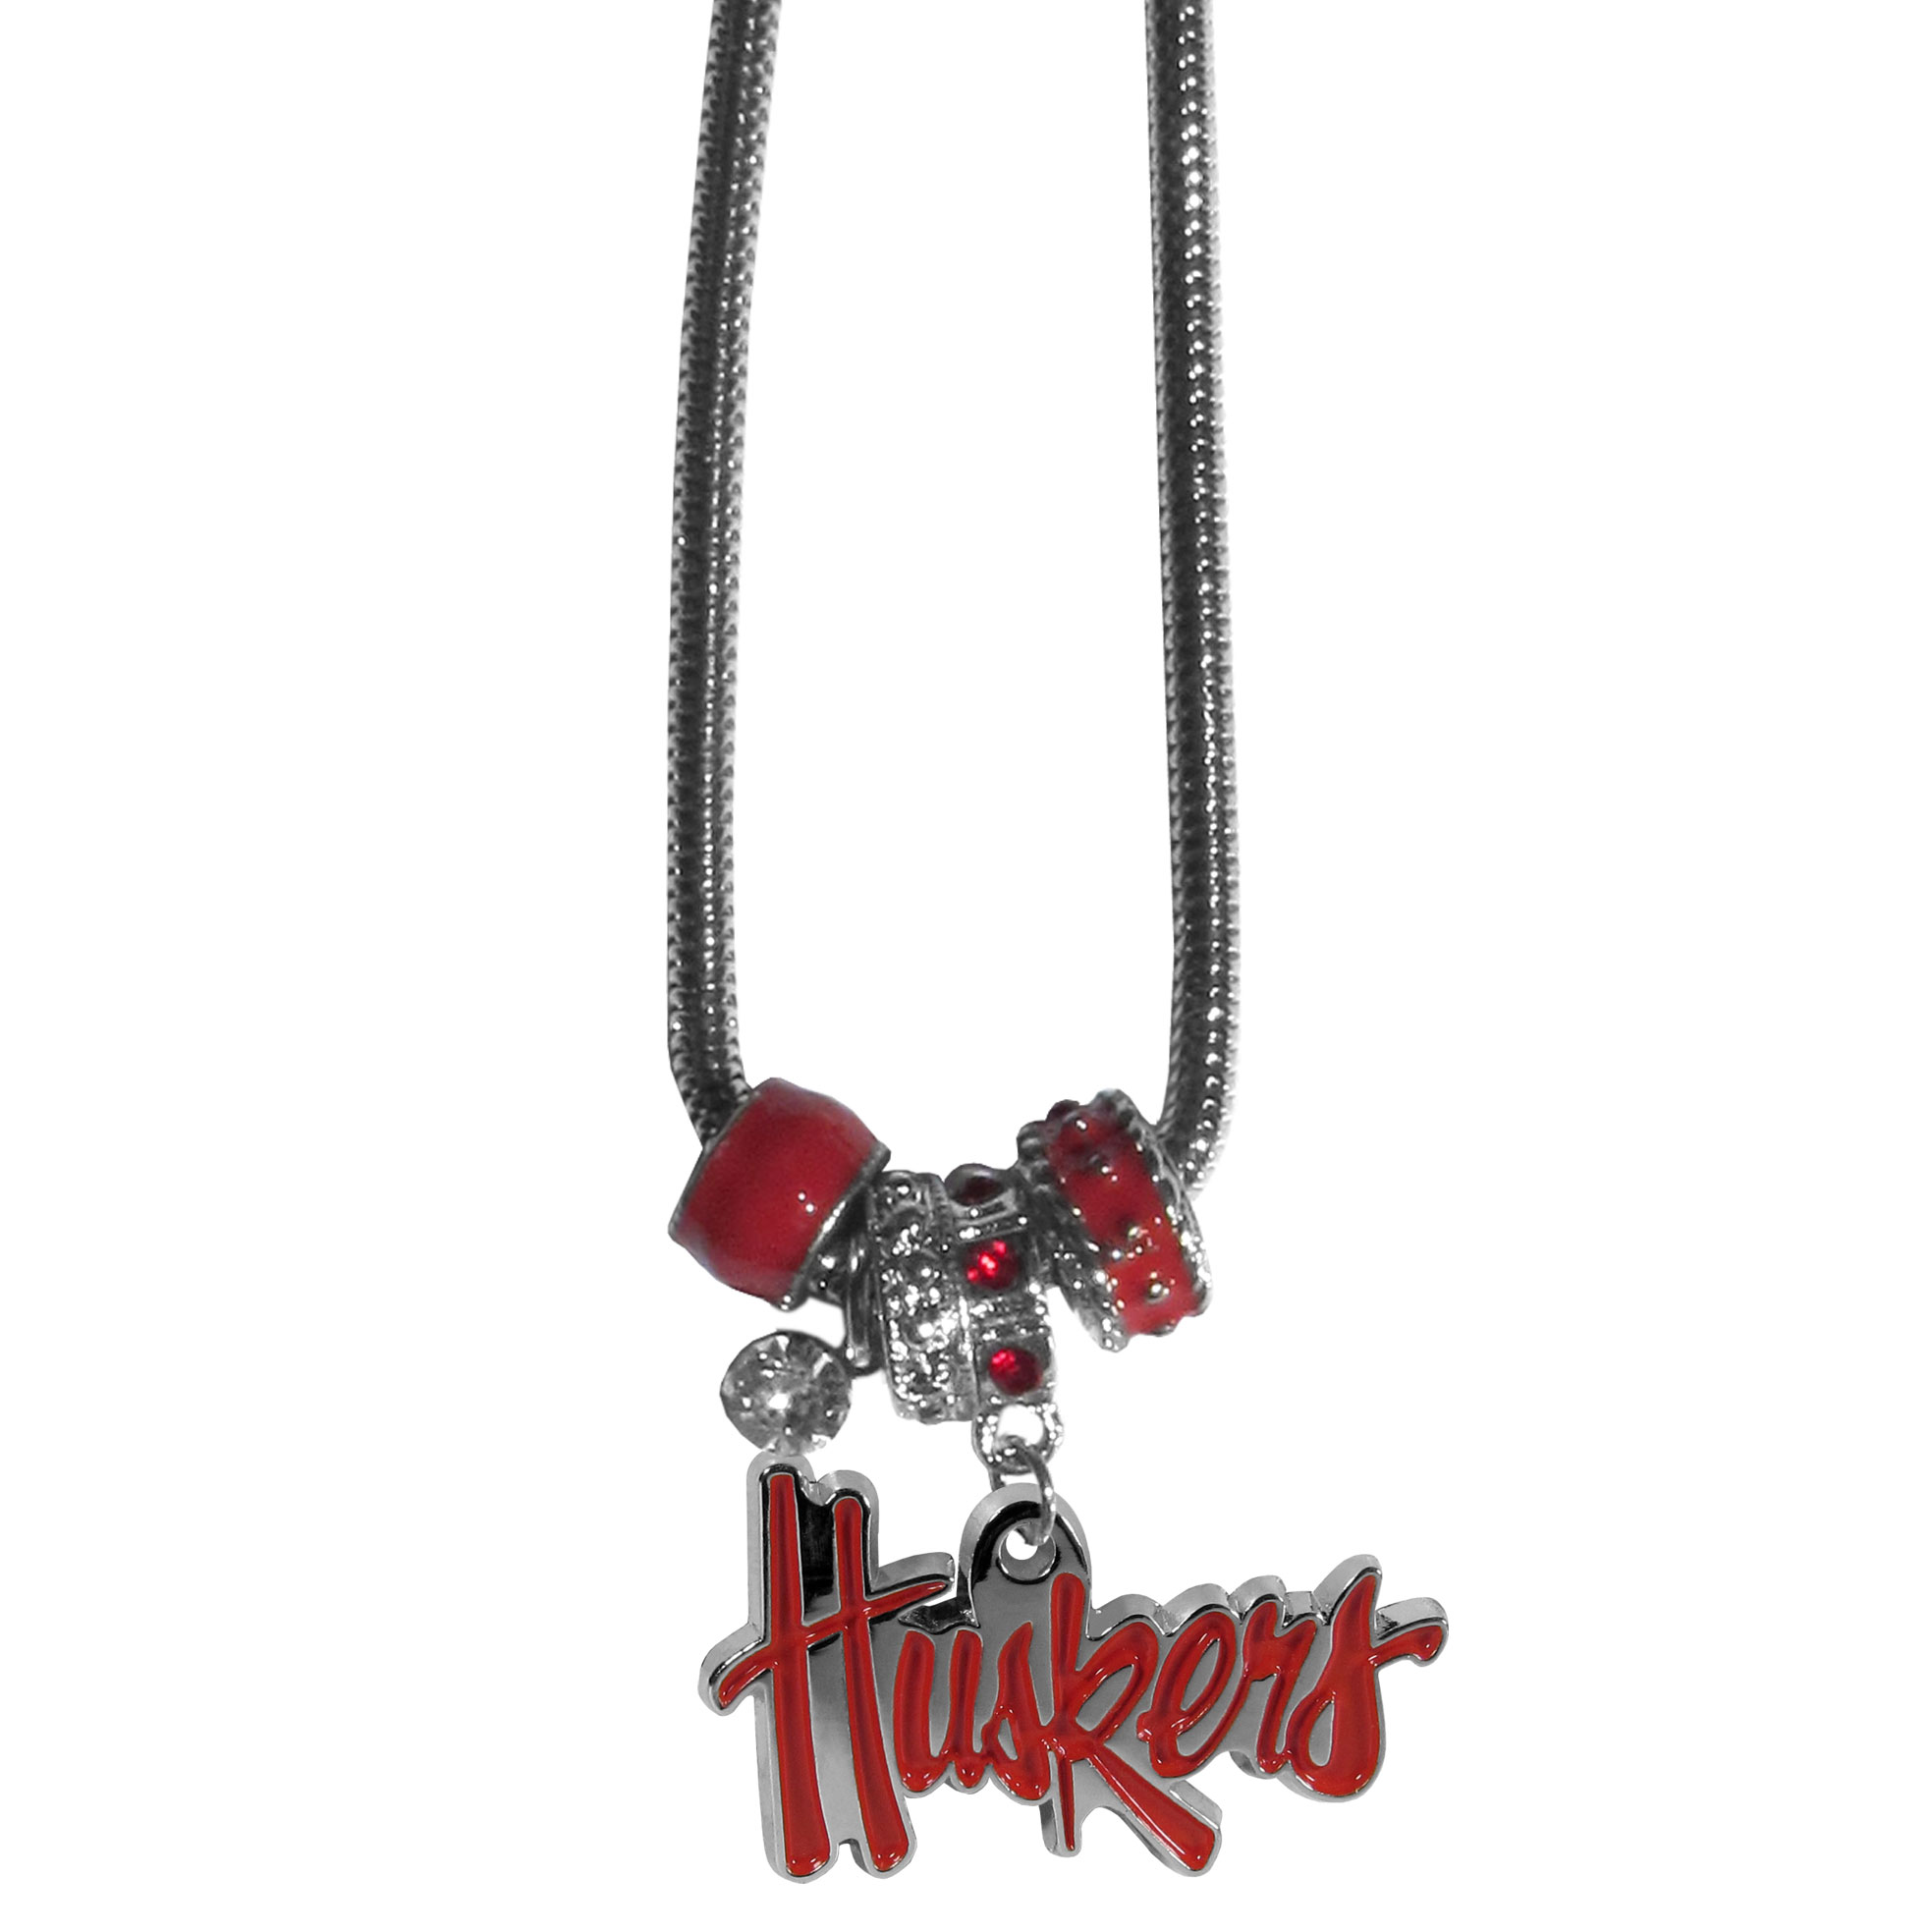 Nebraska Cornhuskers Euro Bead Necklace - We have combined the wildly popular Euro style beads with your favorite team to create our Nebraska Cornhuskers bead necklace. The 18 inch snake chain features 4 Euro beads with enameled team colors and rhinestone accents with a high polish, nickel free charm and rhinestone charm. Perfect way to show off your team pride. Thank you for shopping with CrazedOutSports.com